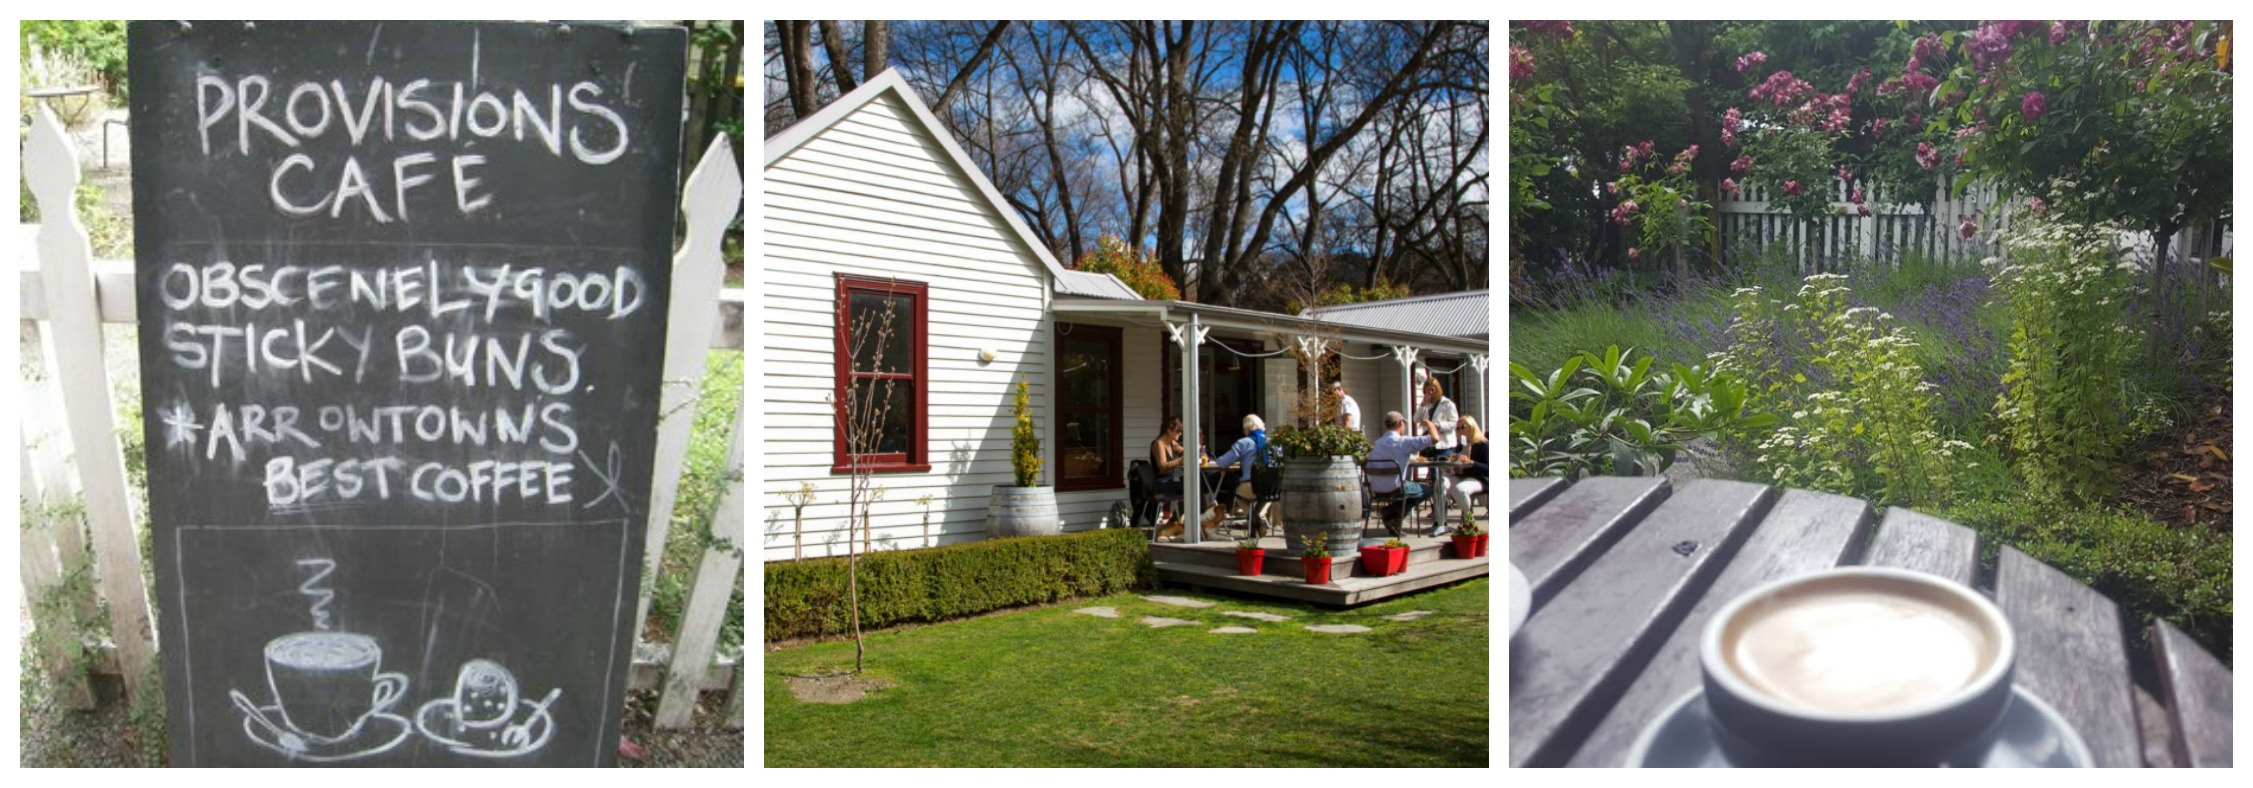 Provisions of Arrowtown | Cafe Arrowtown